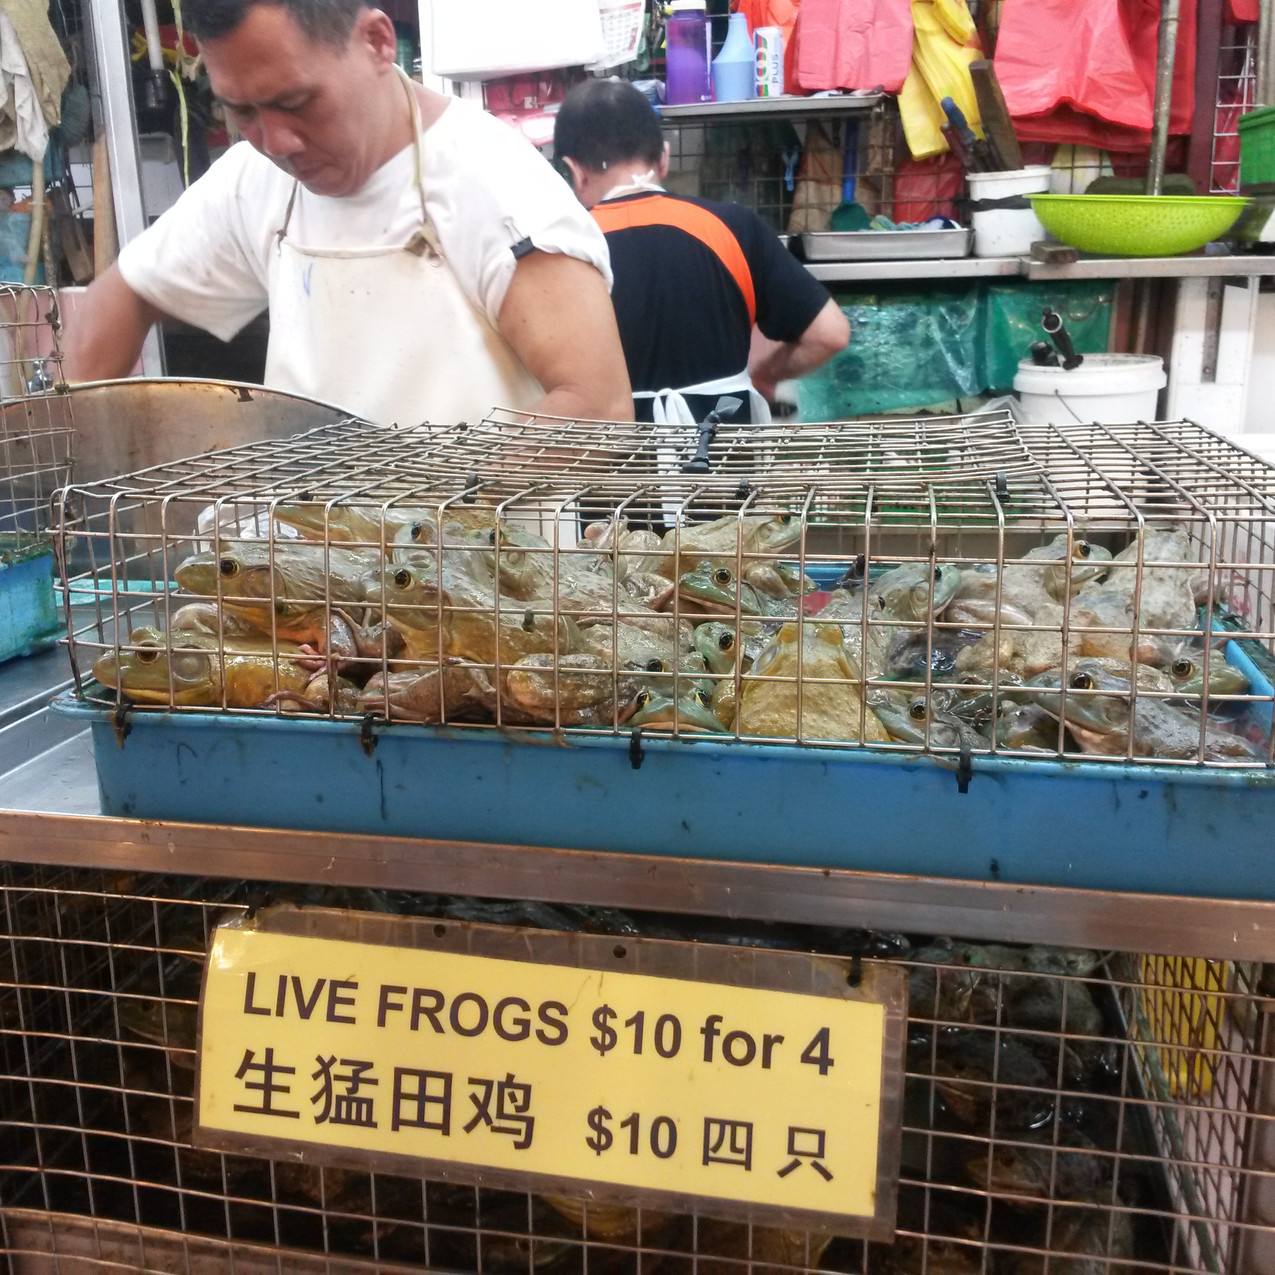 Photo 4. Live frogs sold at Chinatown market, Singapore